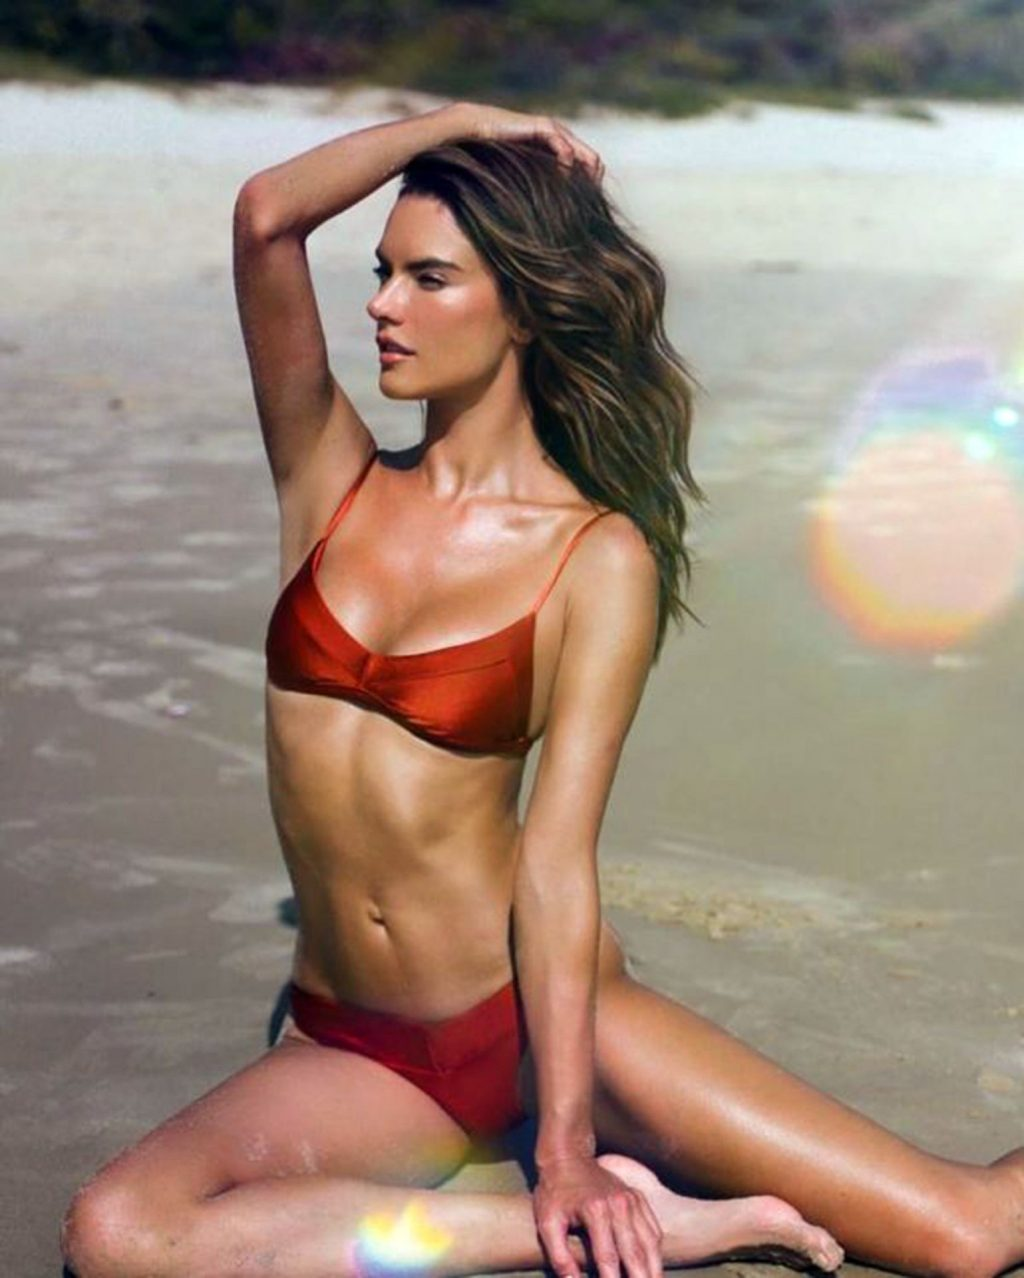 Alessandra Ambrosio Presents the New Campaign of Her Brand Gal Floripa (8 Photos)